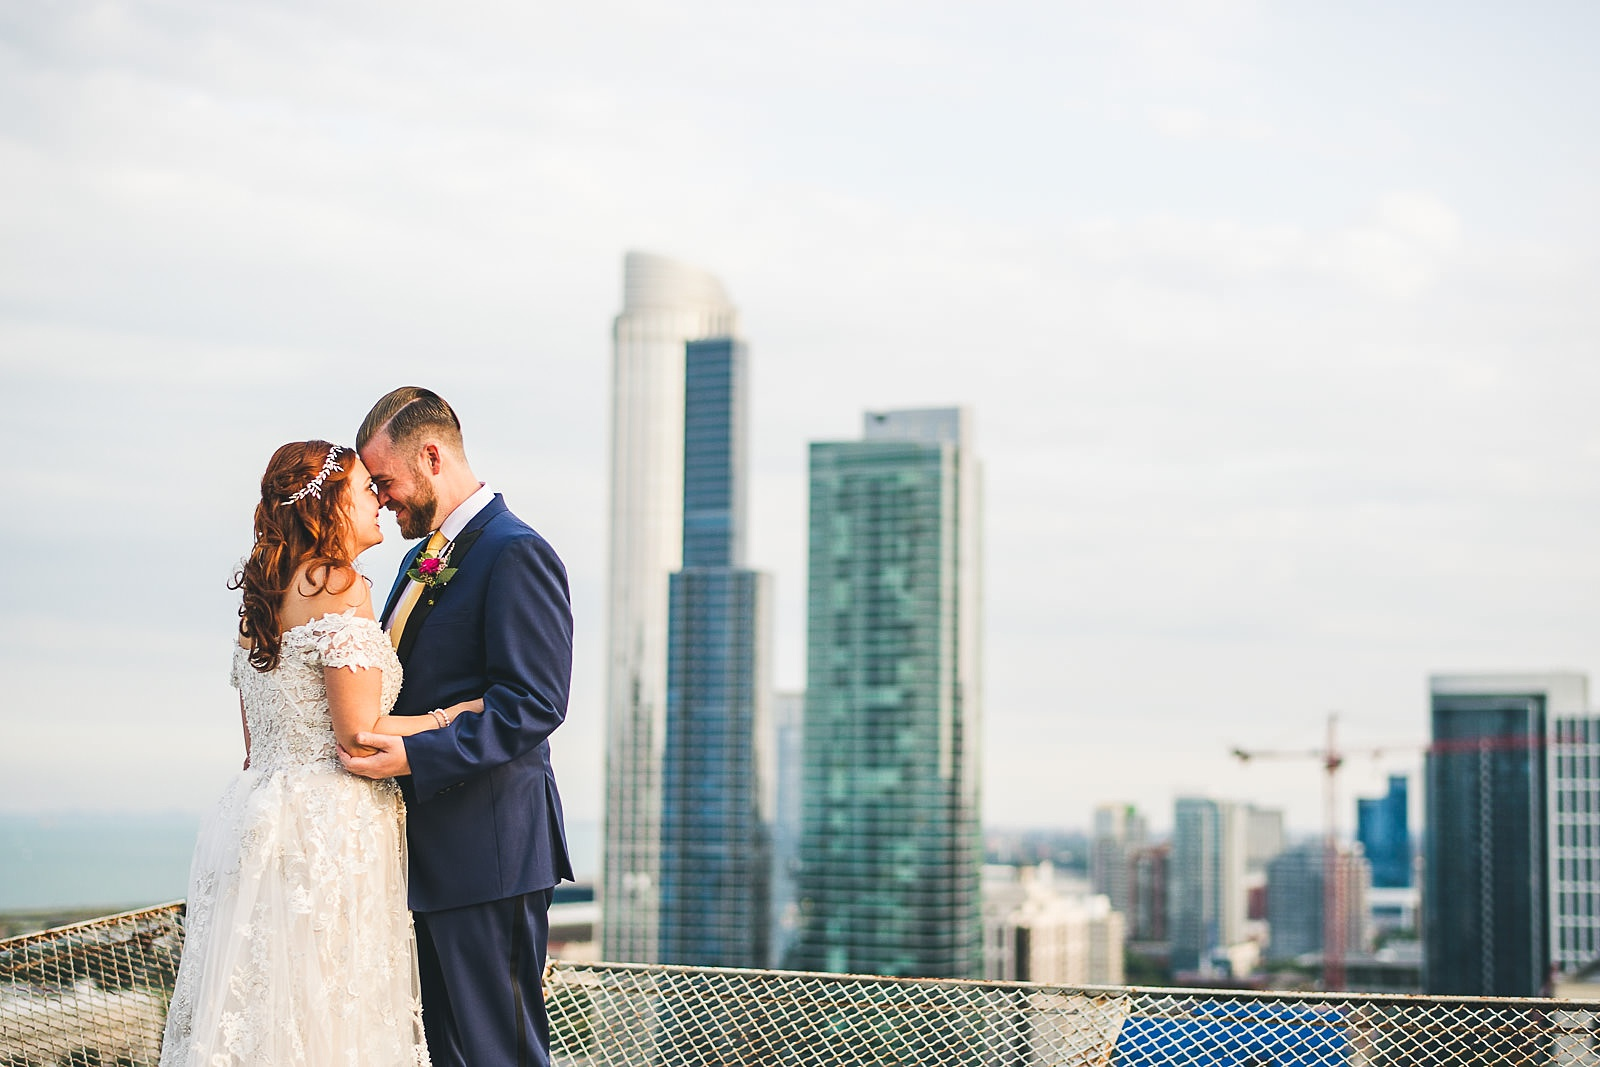 50 chicago wedding photography - Hilton Chicago Wedding Photographer // Sarah + Aaron